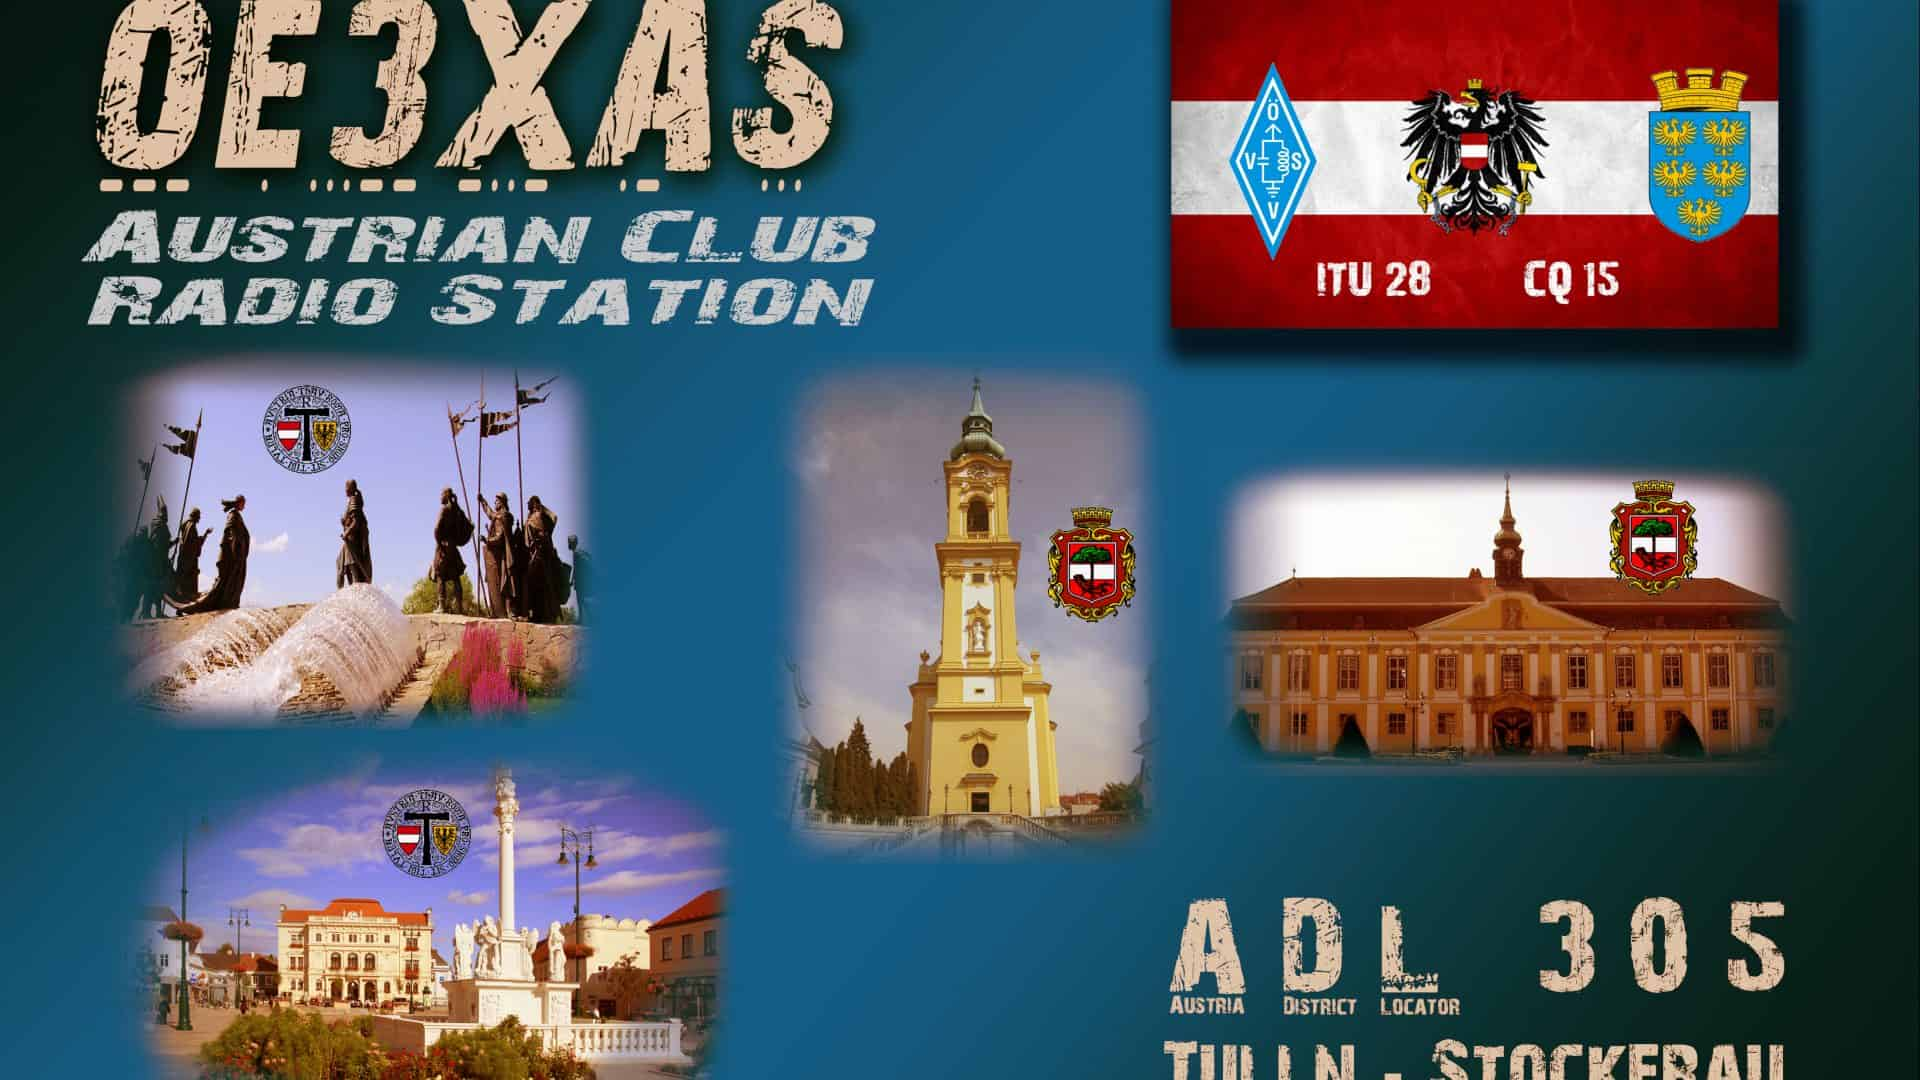 OE3XAS ... our club-call